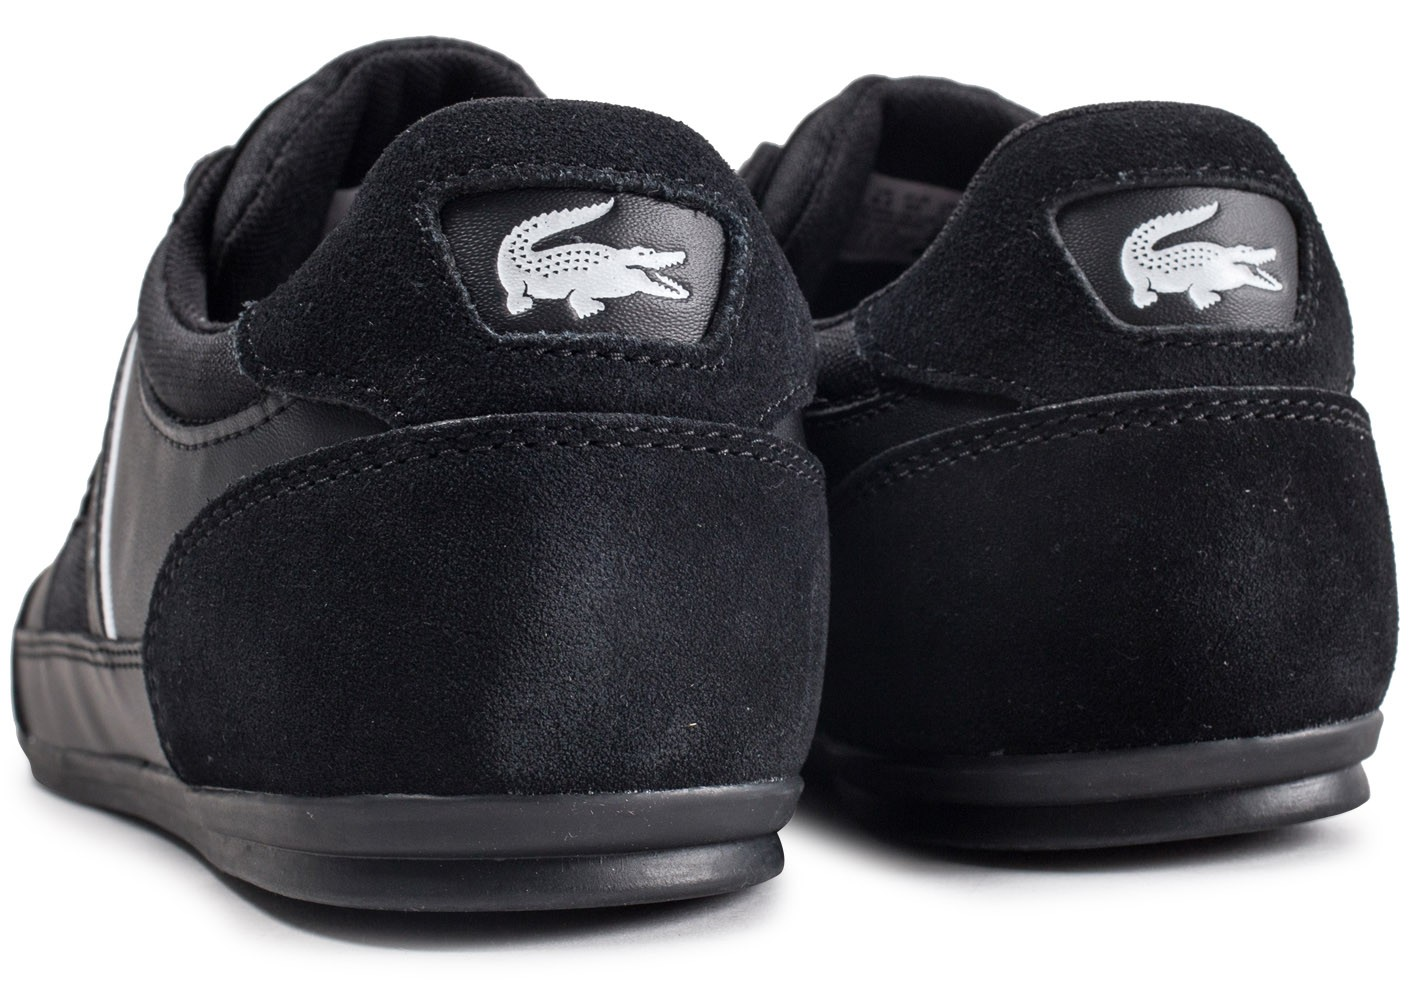 Chausport Chaymon 318 Homme Noire Lacoste Chaussures Baskets exrodBCQWE